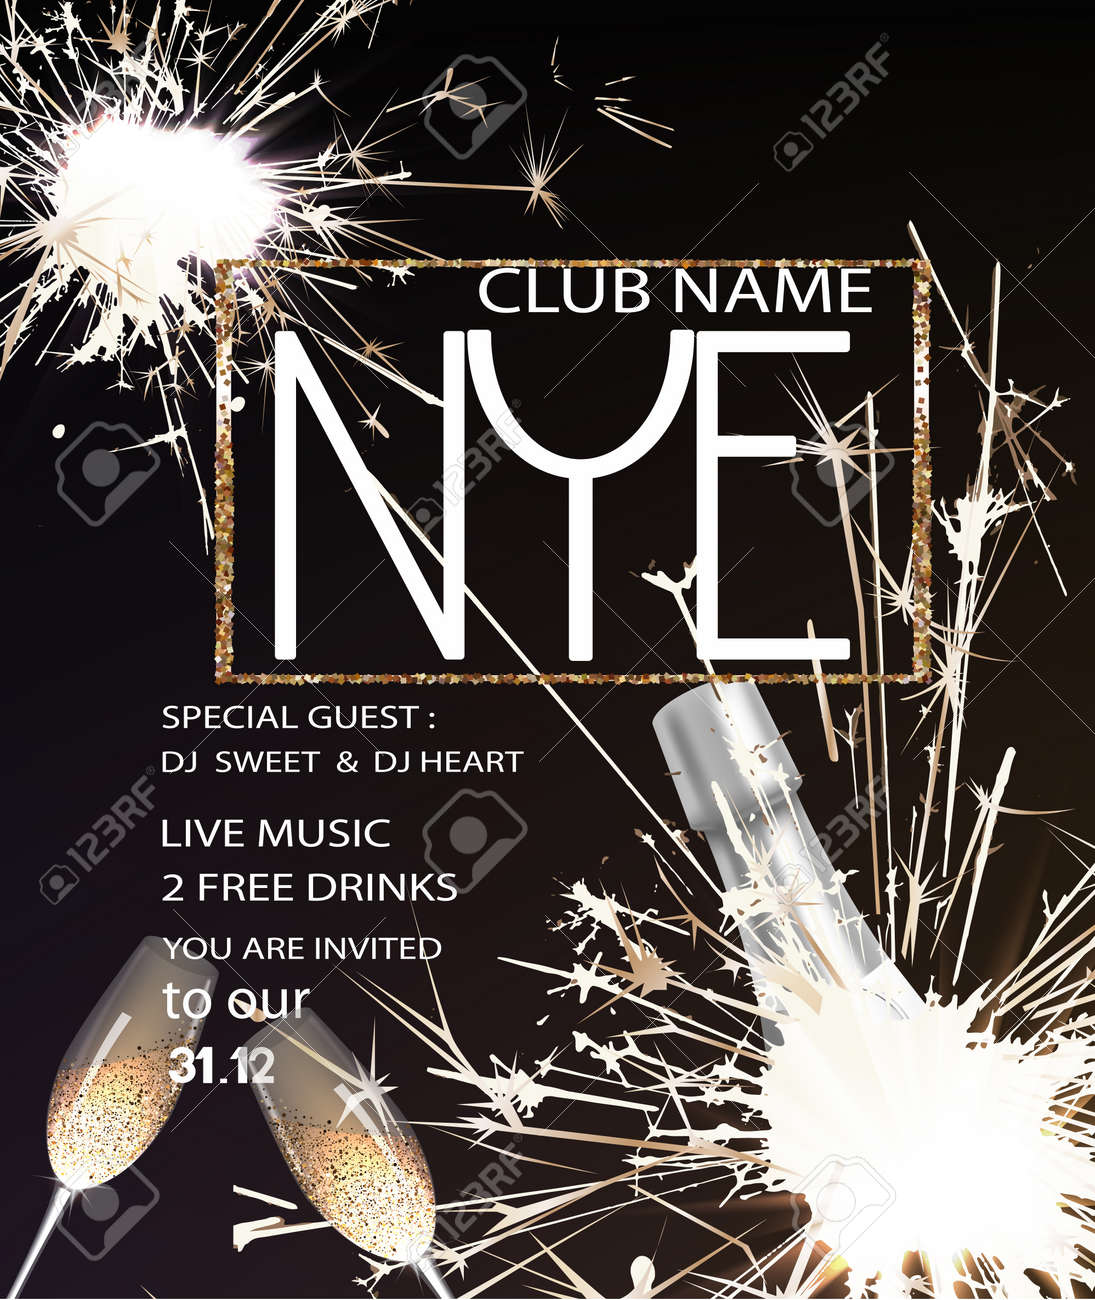 new years eve party invitation card with a bottle of champagne glasses and sparklers